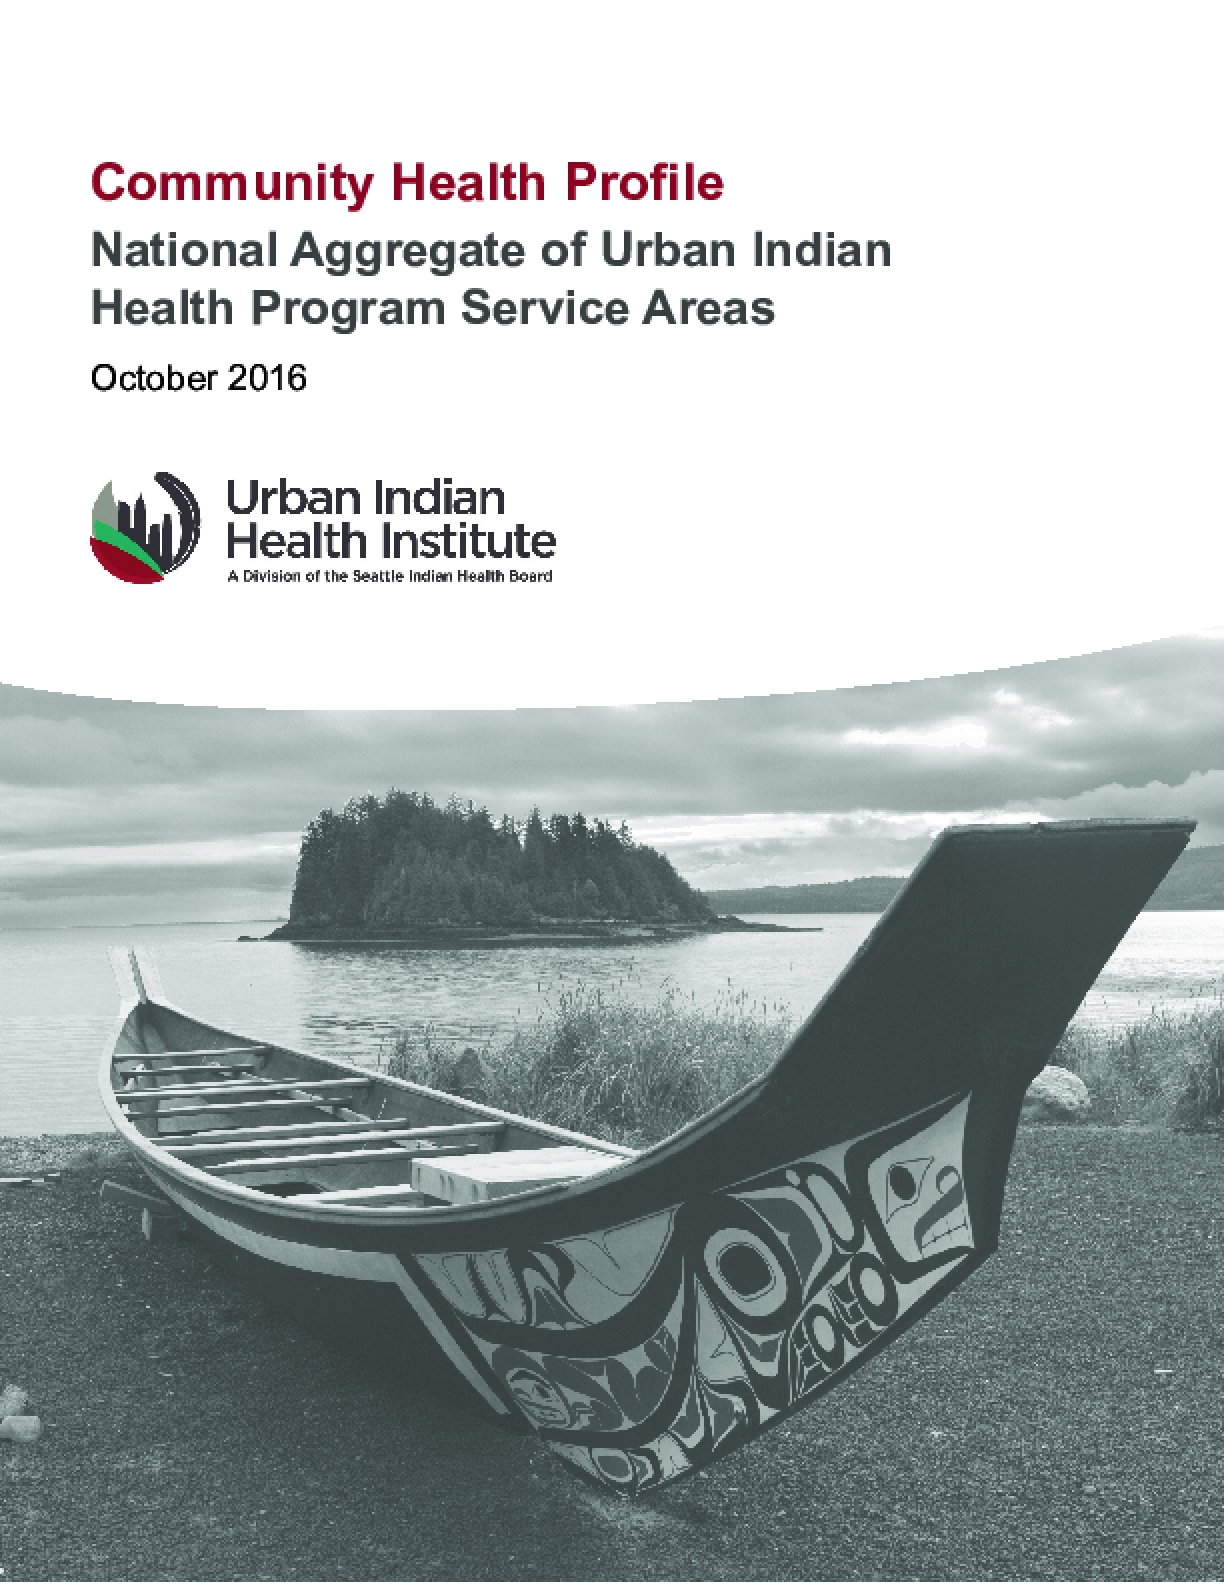 Community Health Profile: National Aggregate of Urban Indian Health Program Service Areas